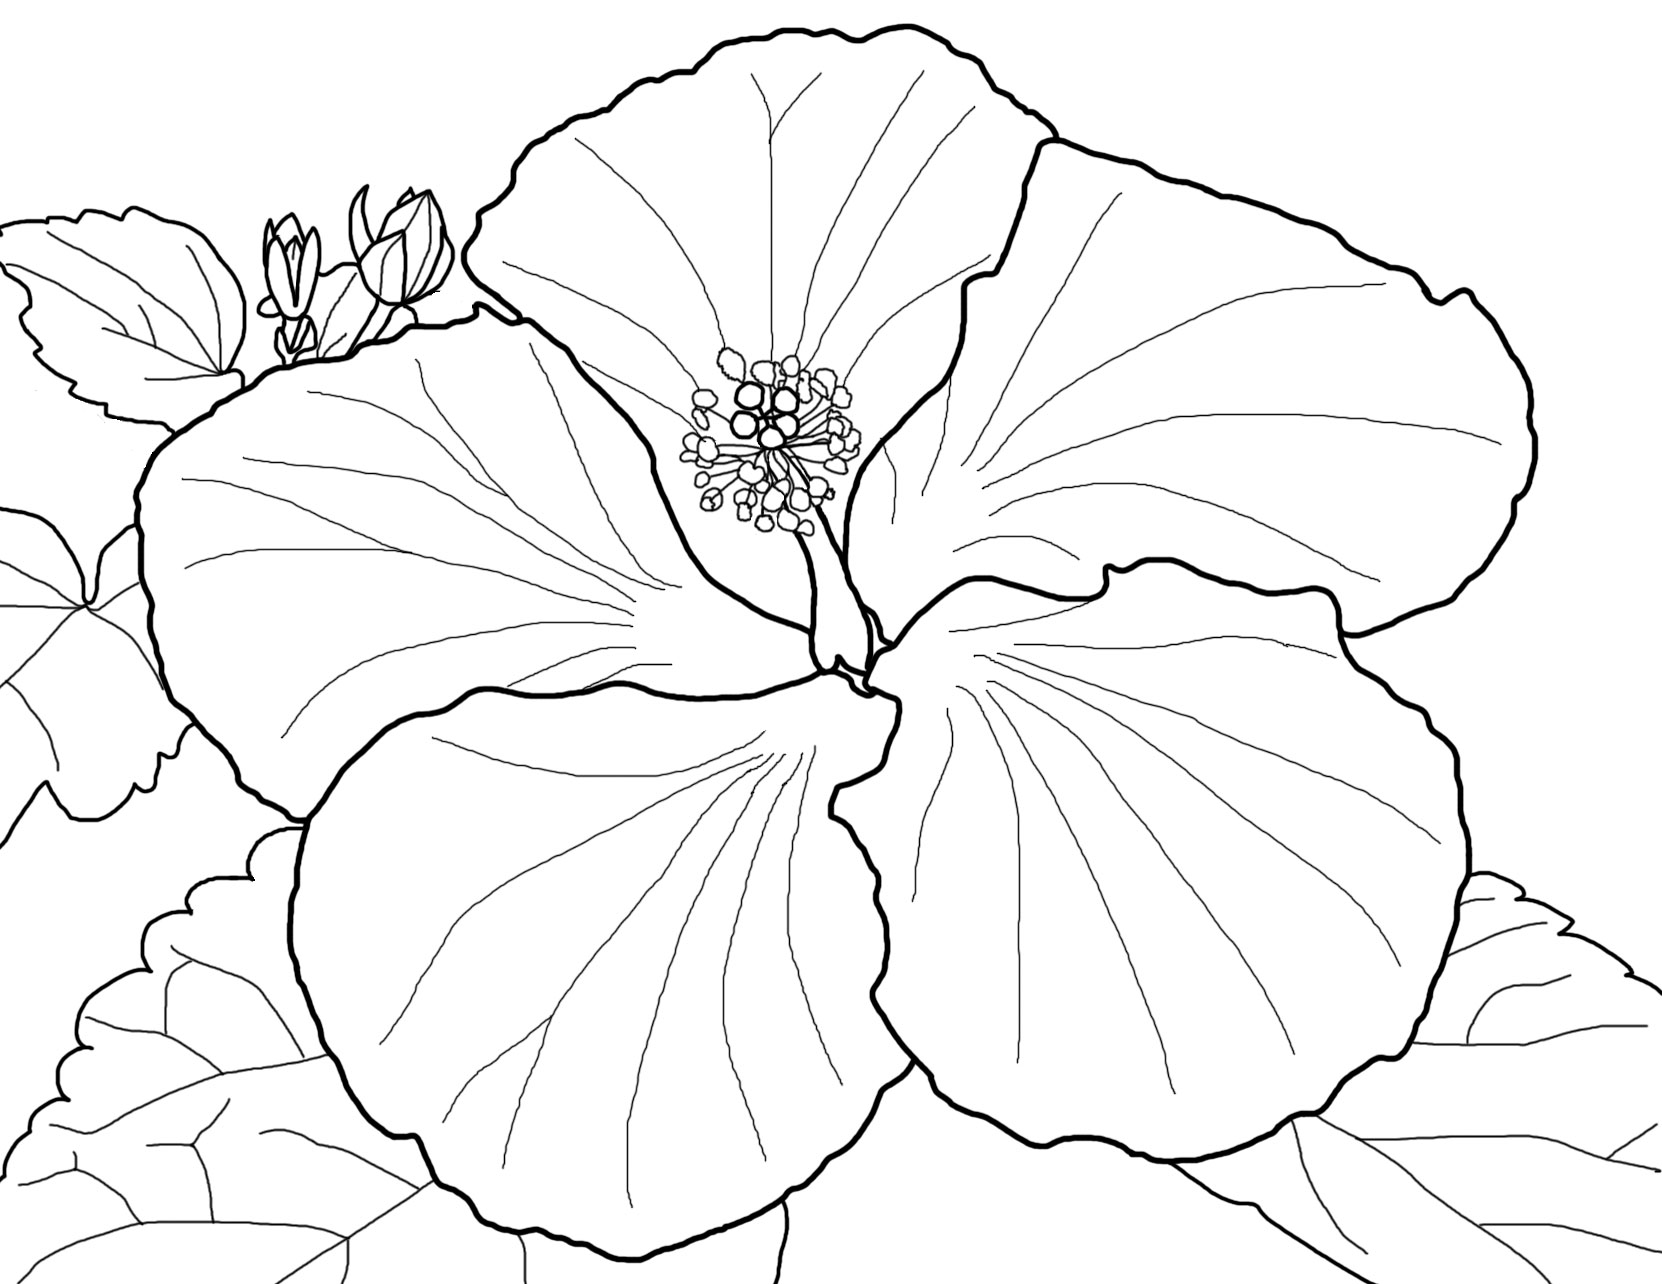 1662x1284 Old Fashioned Cherry Blossom Tree Coloring Pages Component